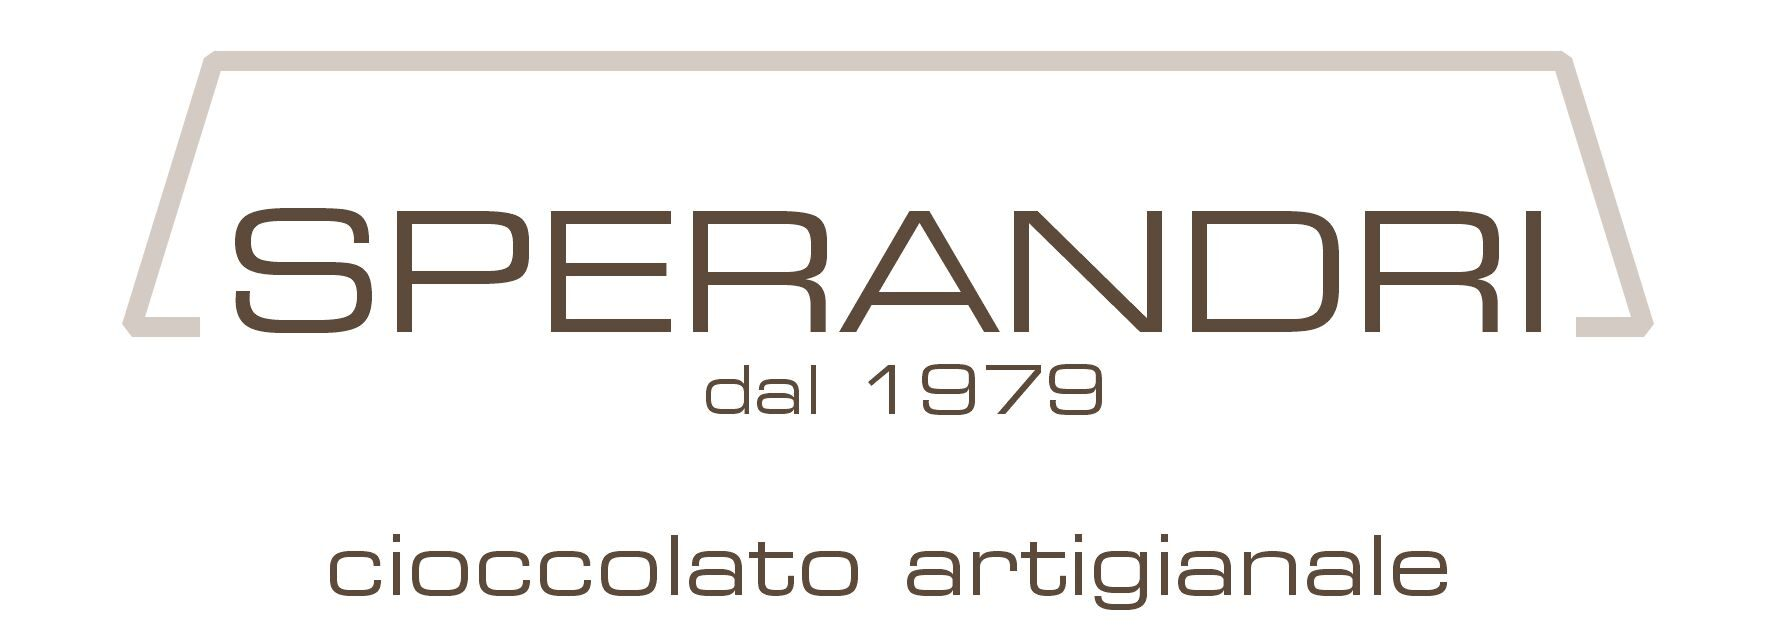 Cioccolateria Sperandri